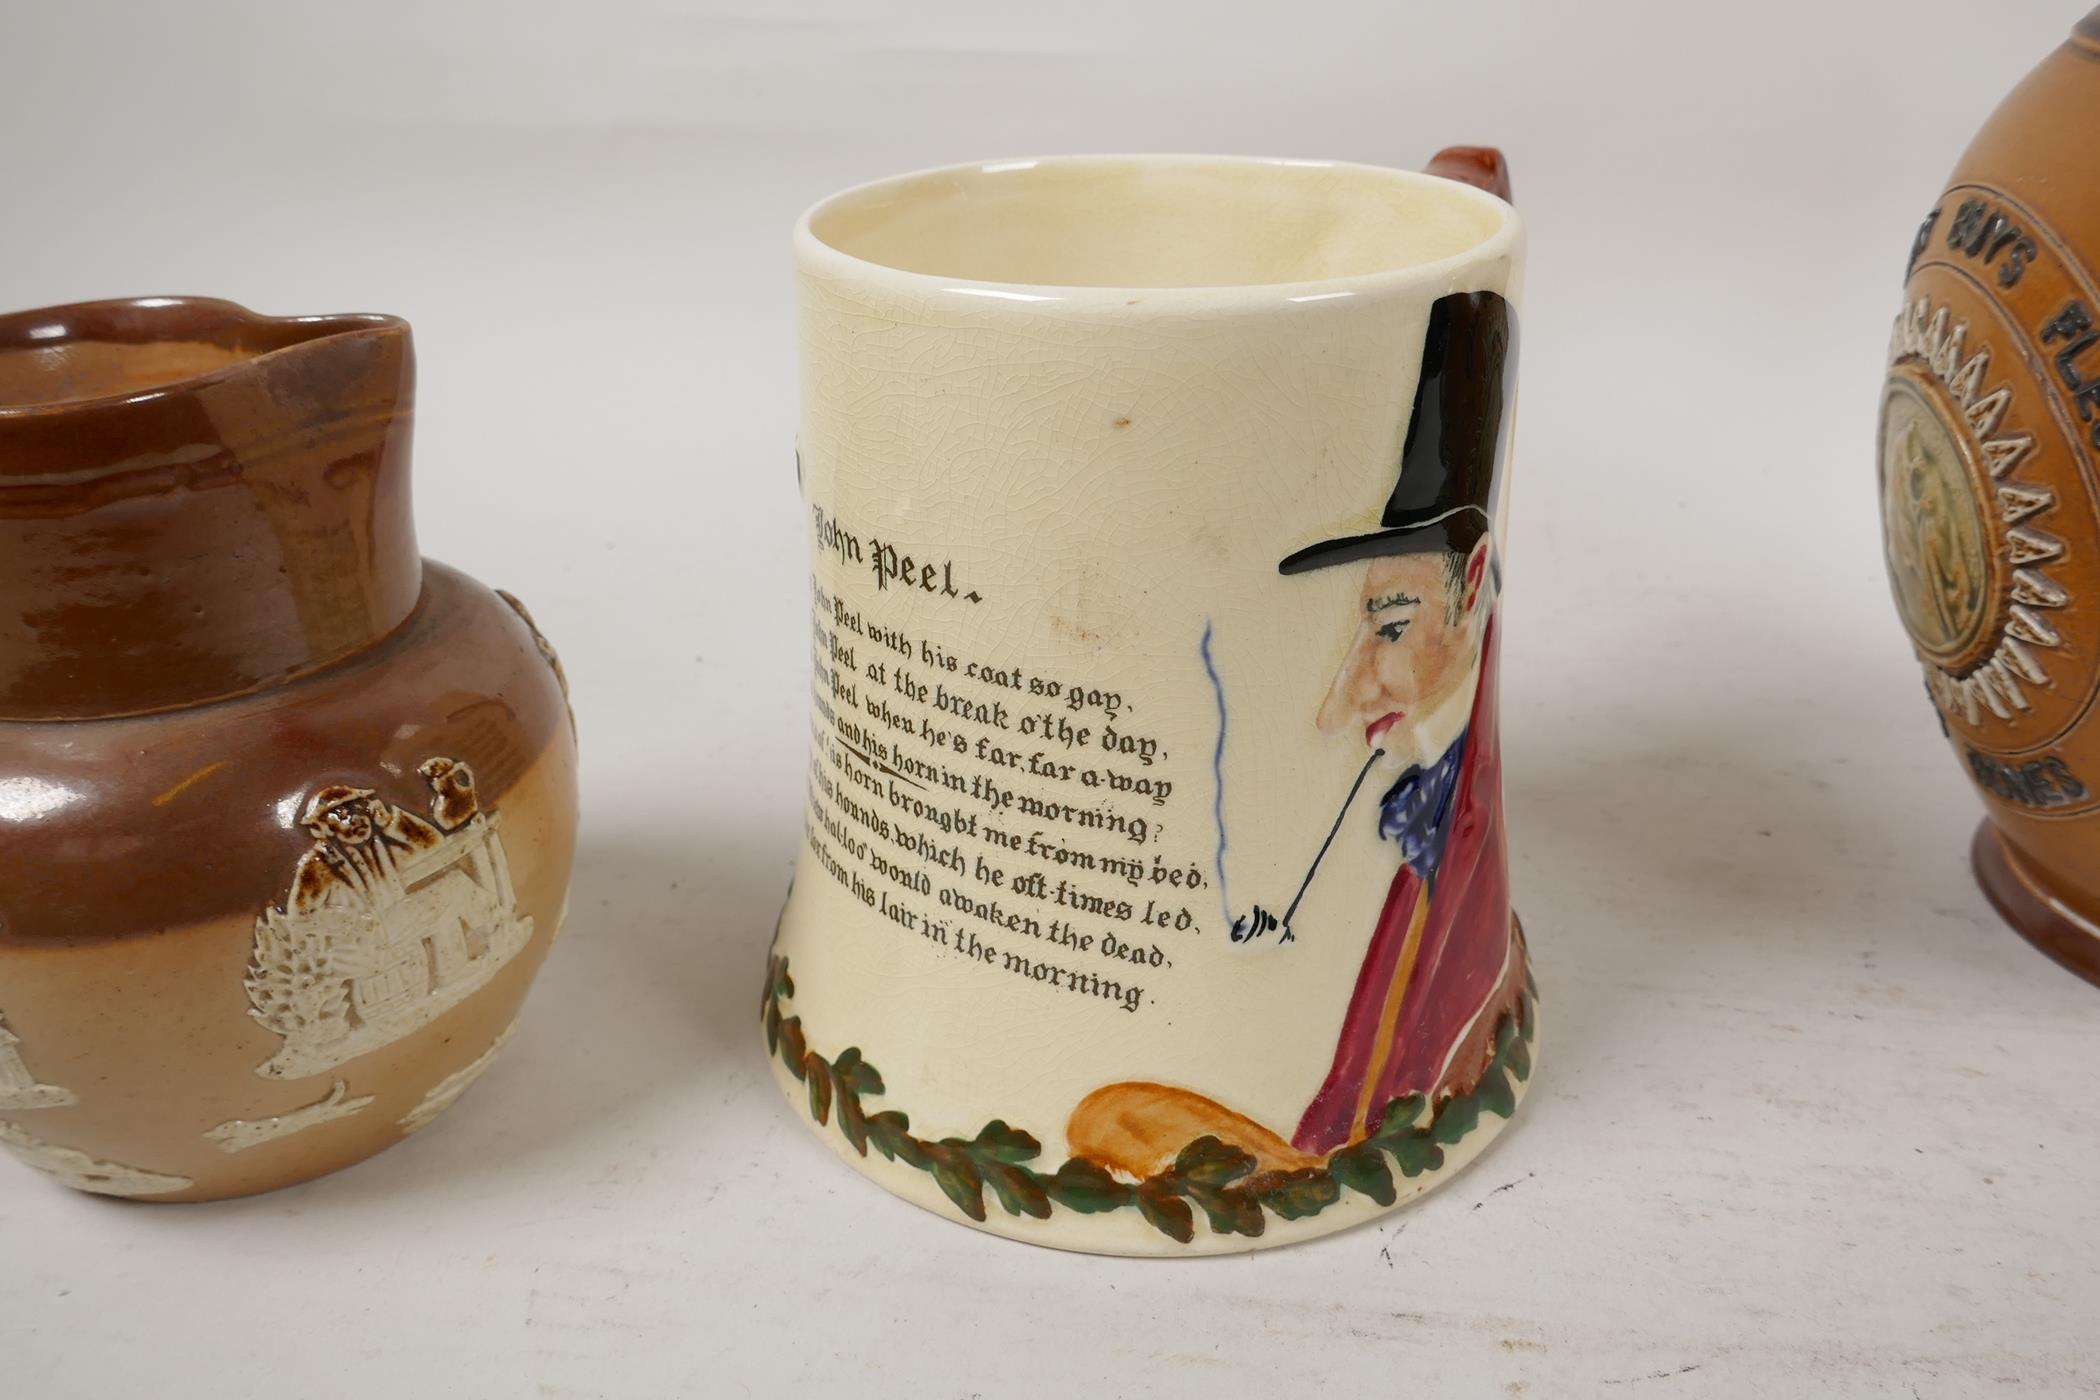 A Doulton Lambeth stoneware jug bearing the legend 'He that buys good ale' embossed with various - Image 2 of 5